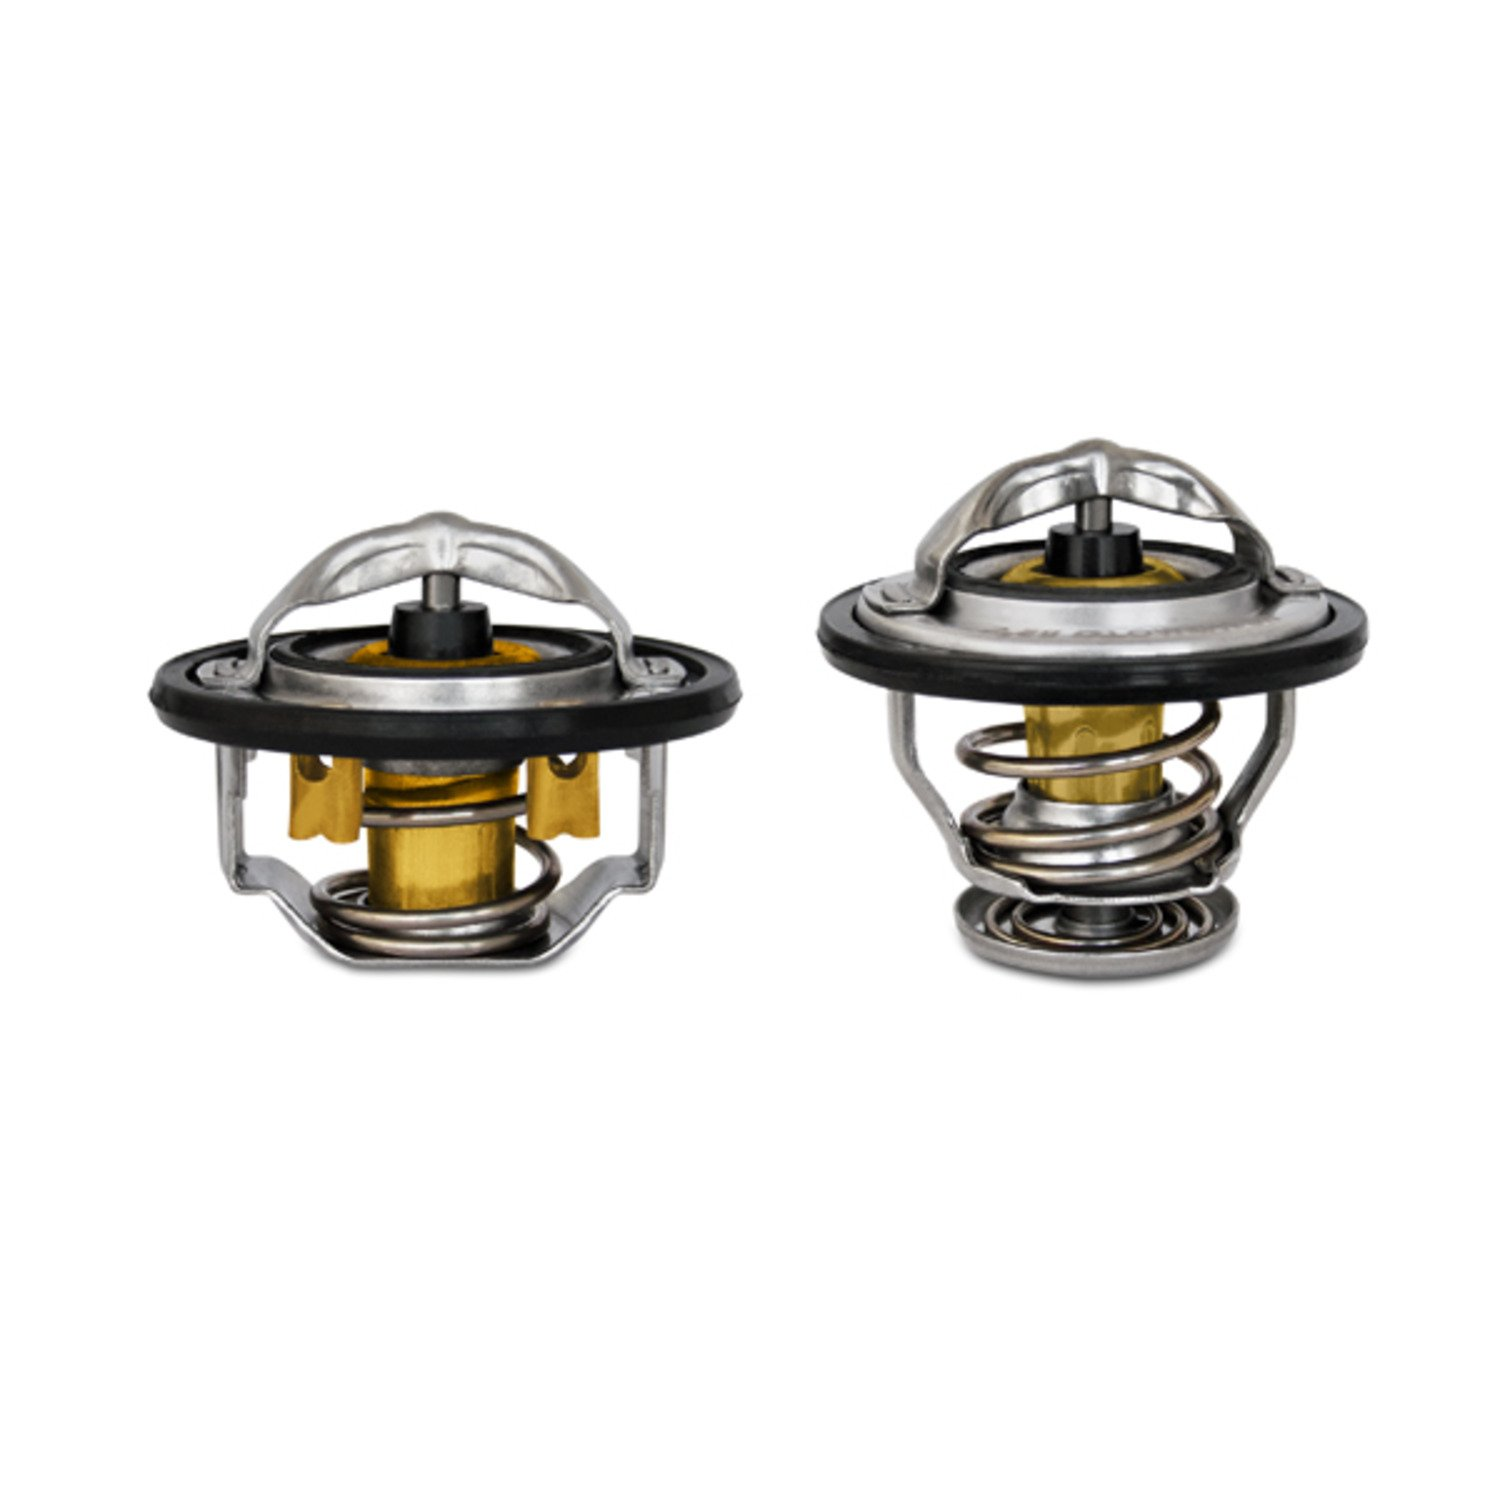 Mishimoto MMTS-CHV-01DL Thermostat (Chevrolet/GMC 6.6L Duramax Engine Low Temperature s (set of 2)), 1 Pack